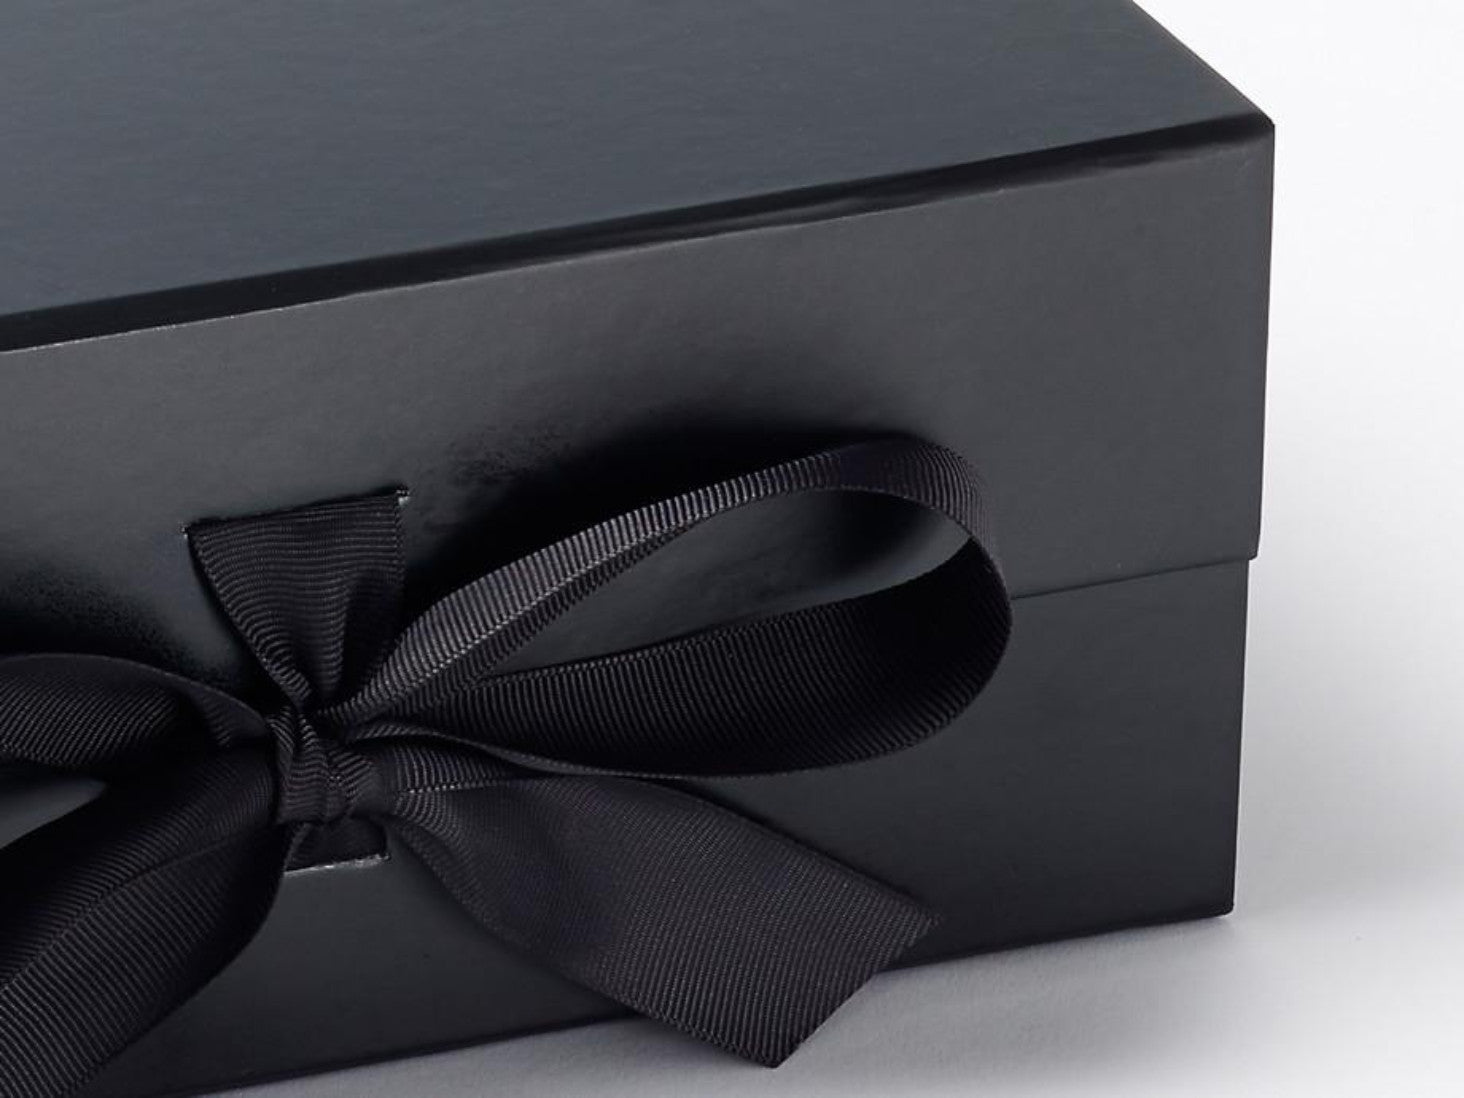 Luxury Folding Black A5 Gift Hamper Box With Magnet Snap